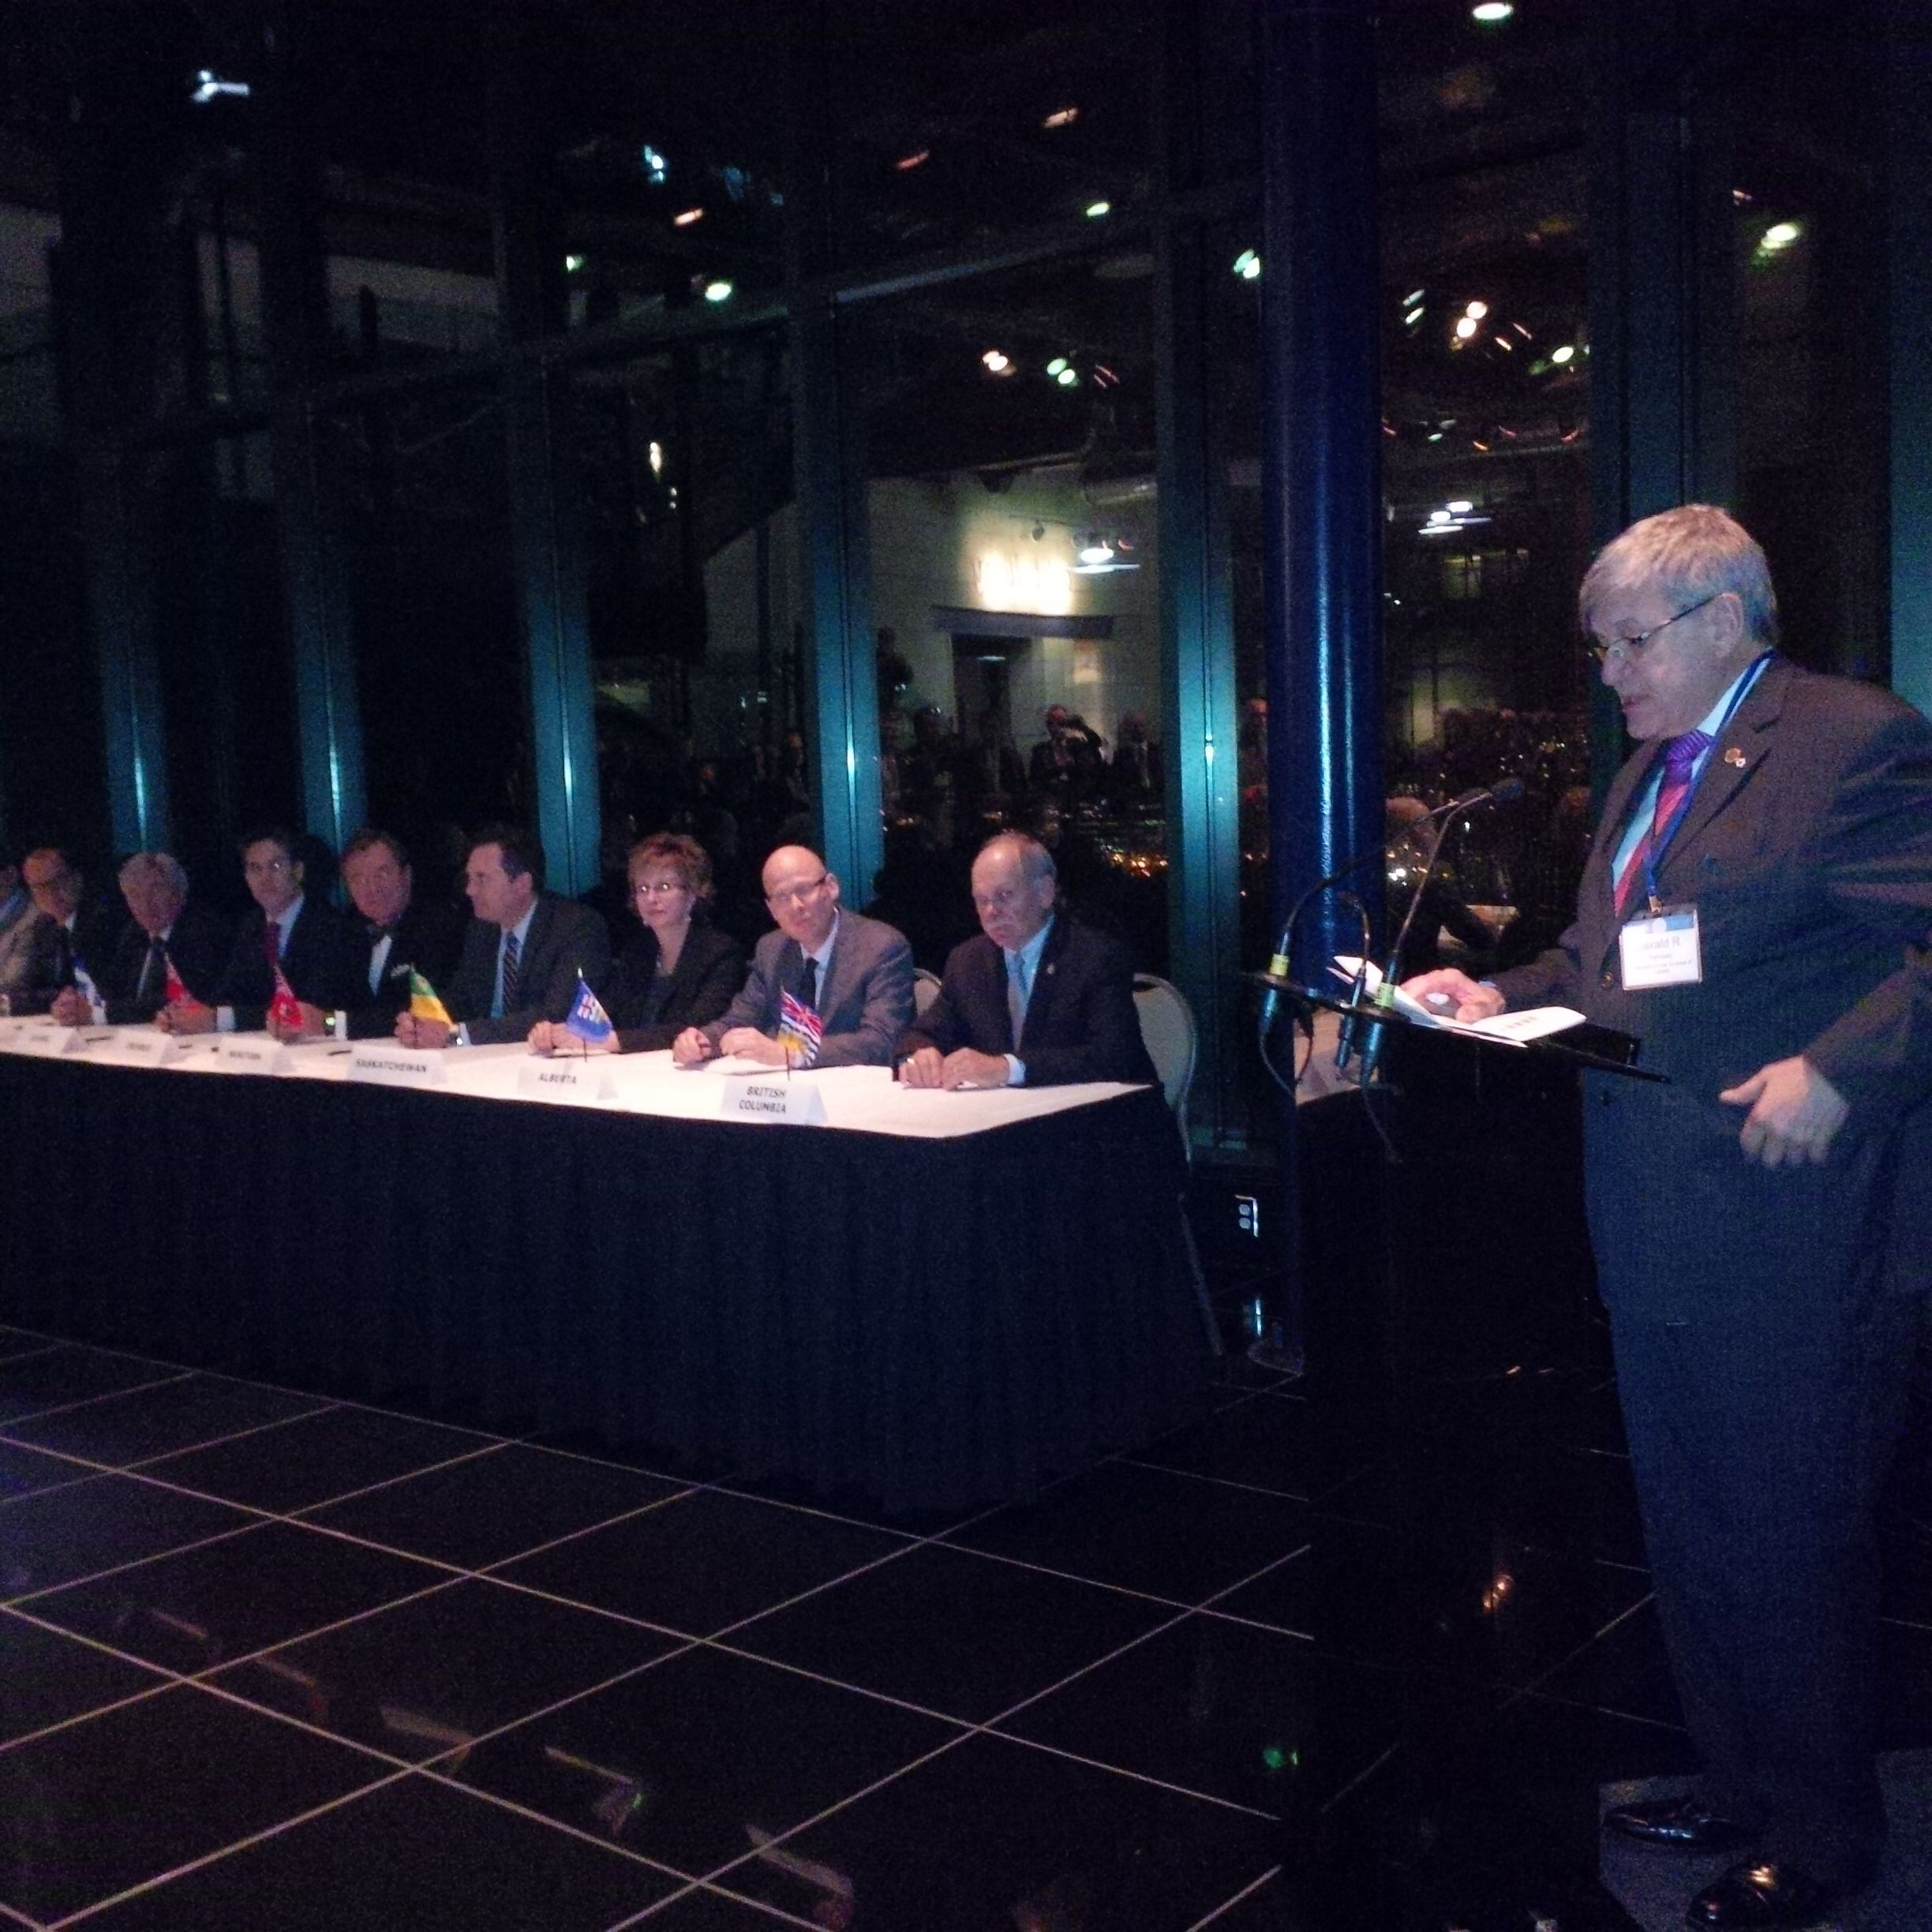 Signing of the National Mobility Agreement in St. John's Thursday night.